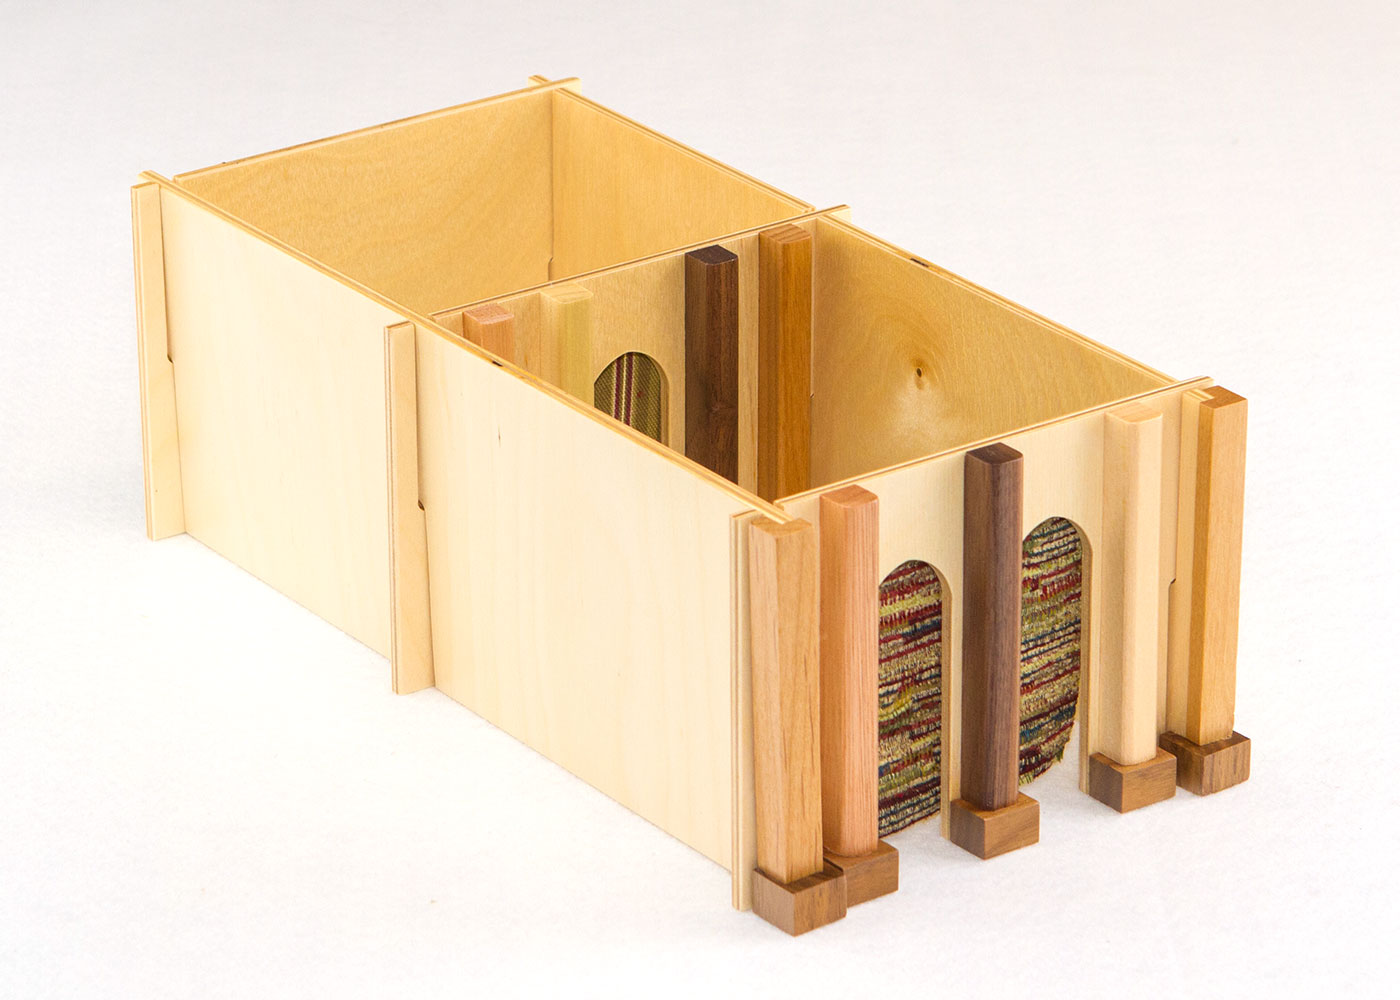 Wooden Tabernacle for Sunday School Lesson